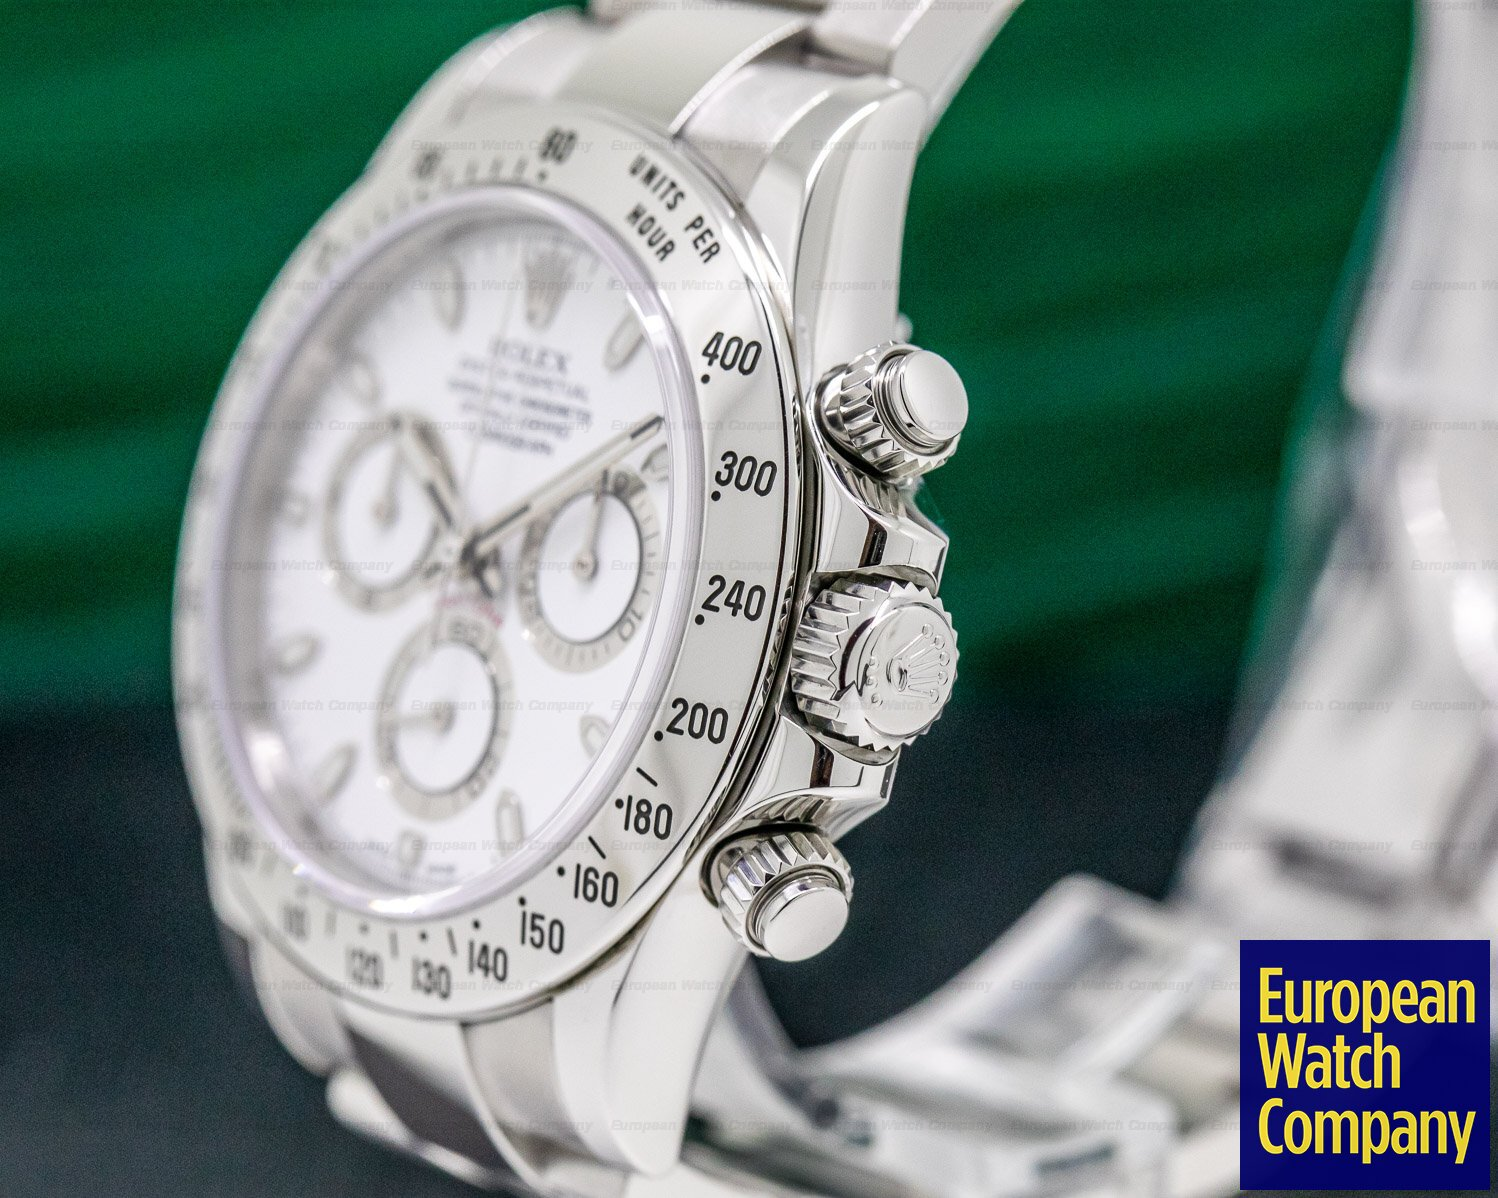 Rolex 116520 Daytona White Dial SS FULL SET ORIGINAL OWNER